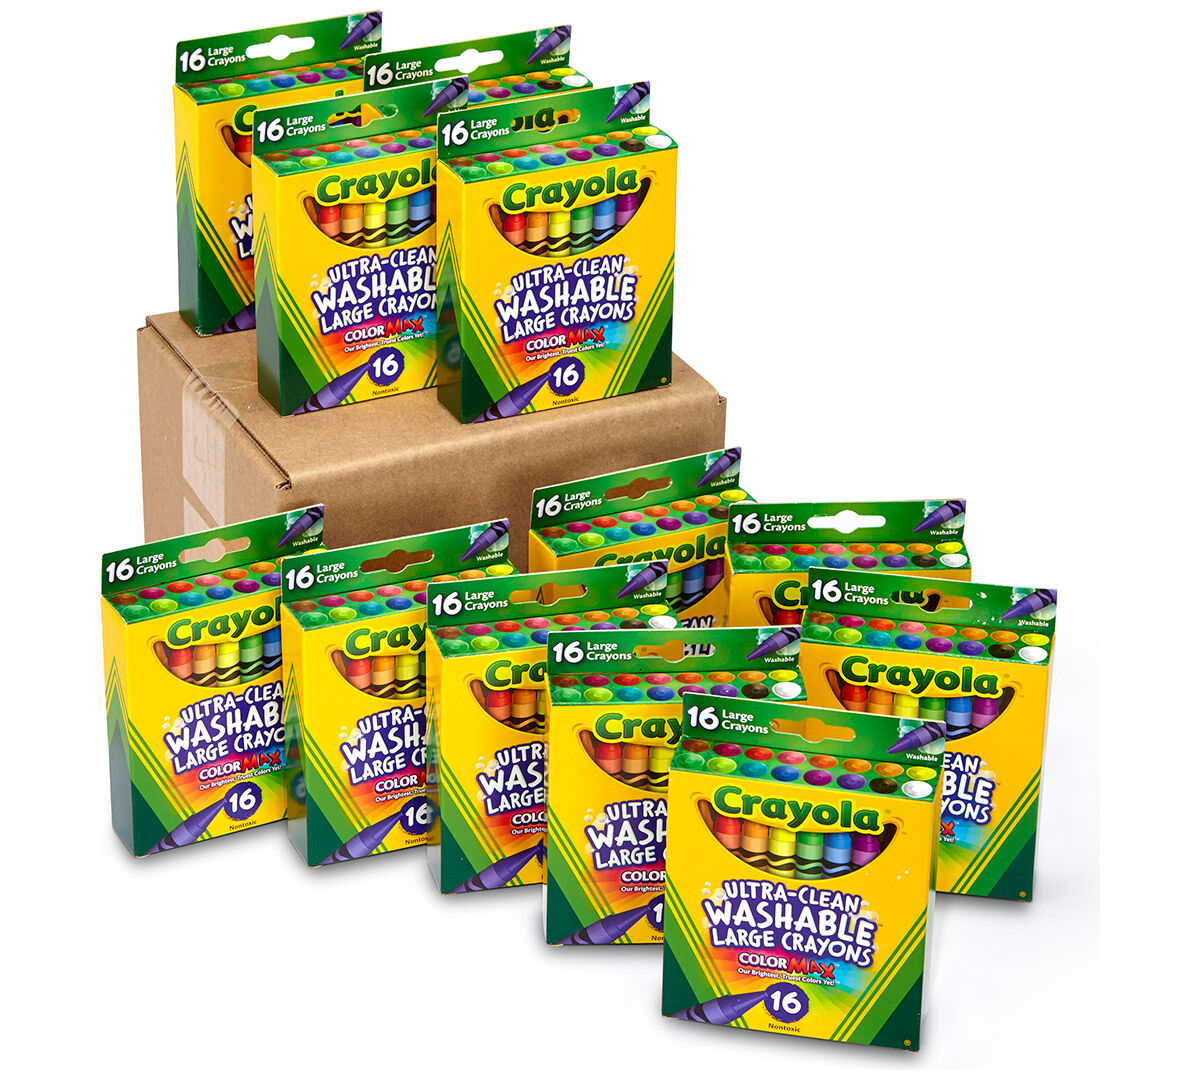 Washable Crayons, 12 Packs of 24 Count | Crayola.com